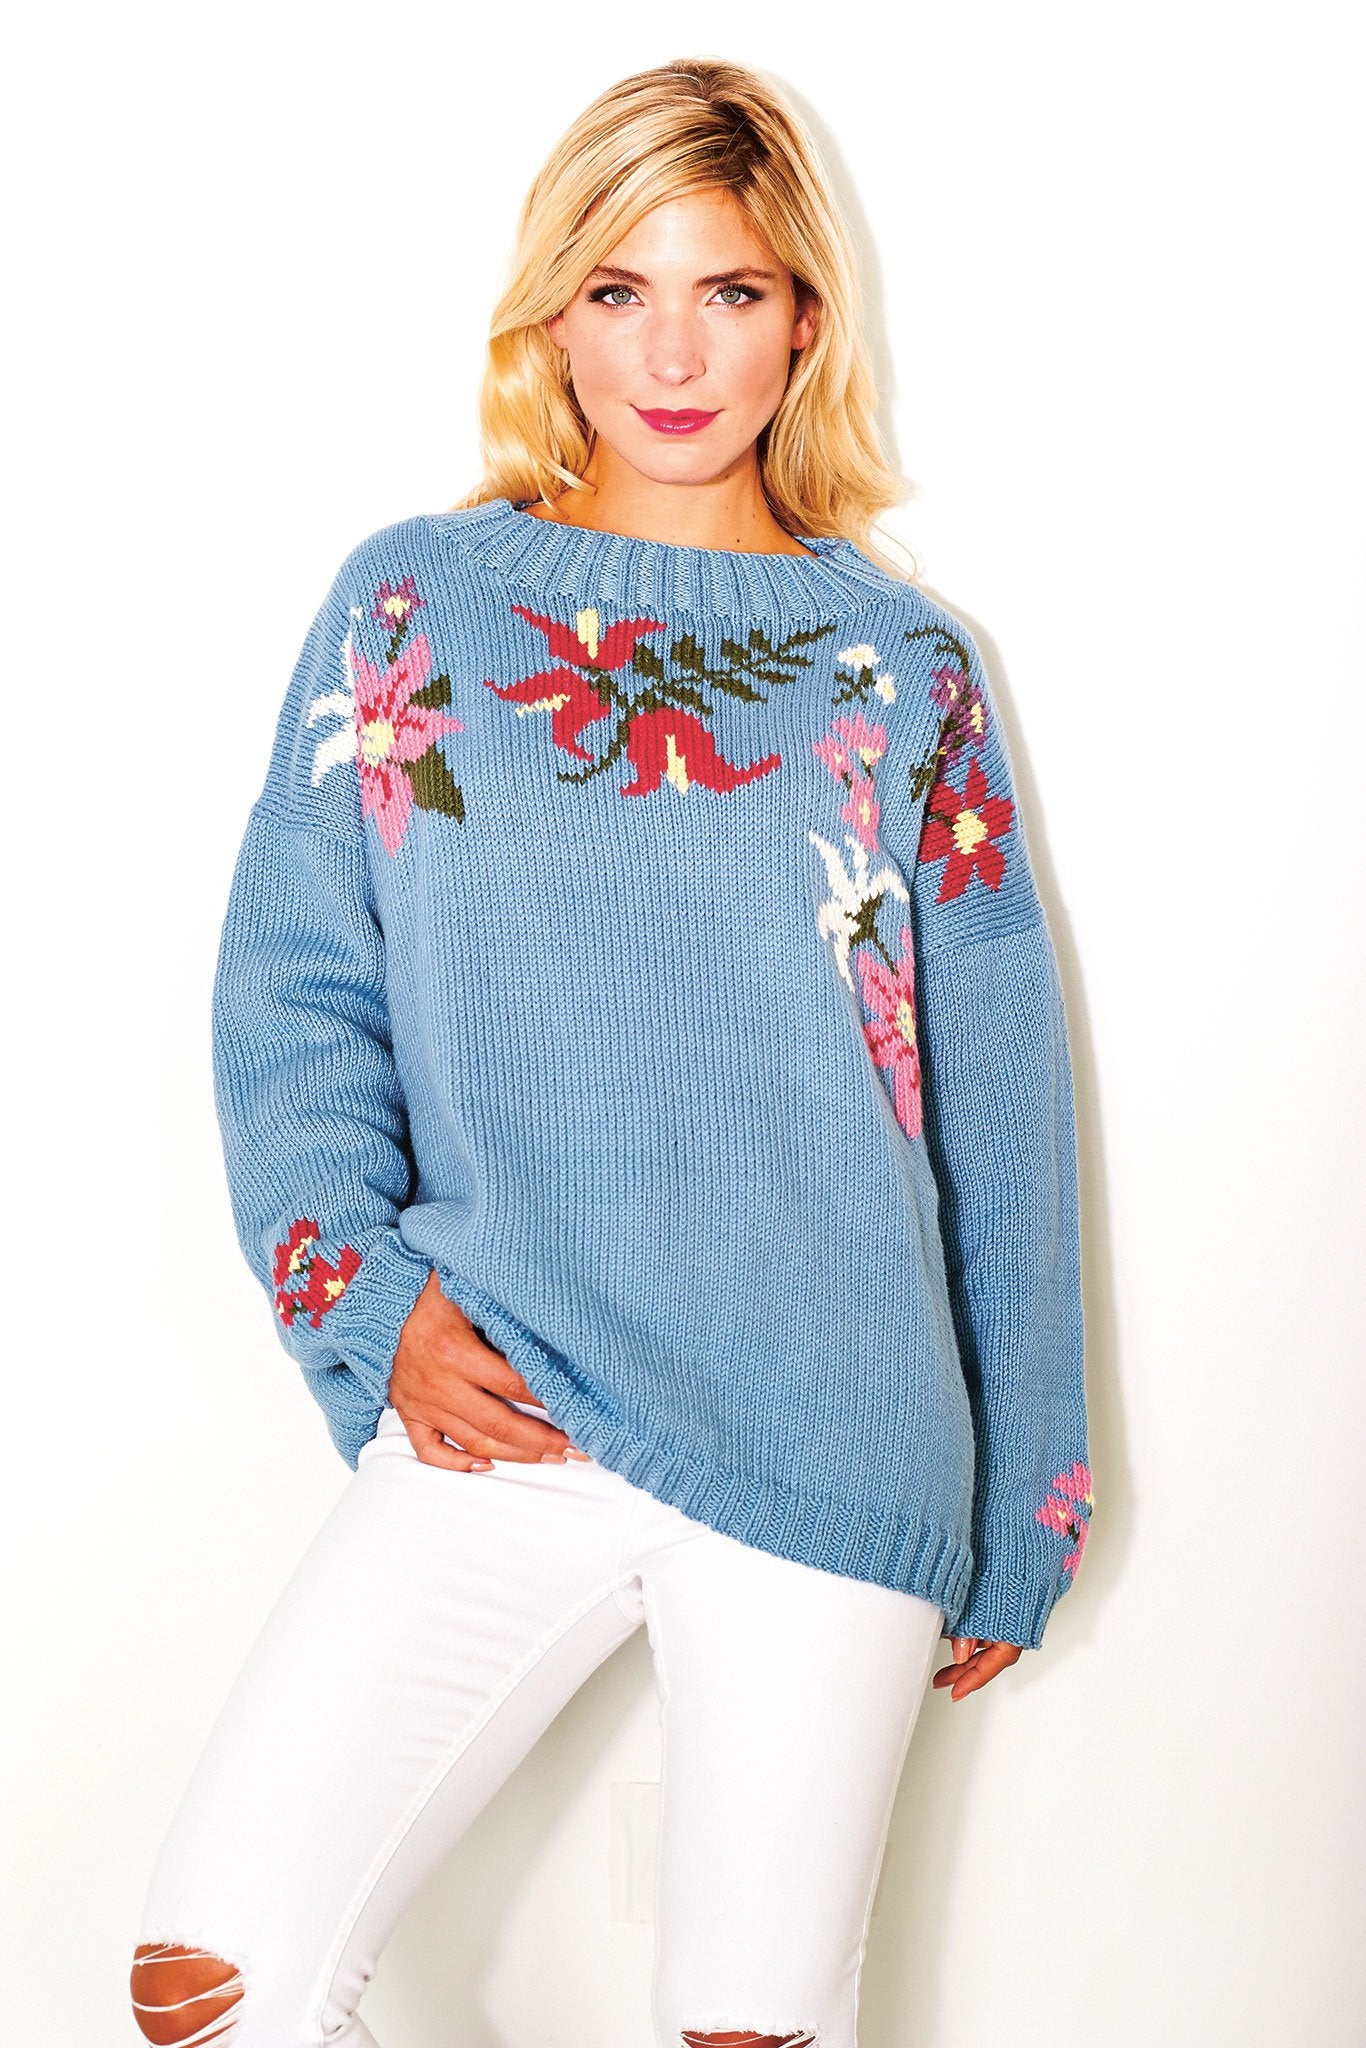 Ladies Floral Jumper Knitting Pattern – The Knitting Network